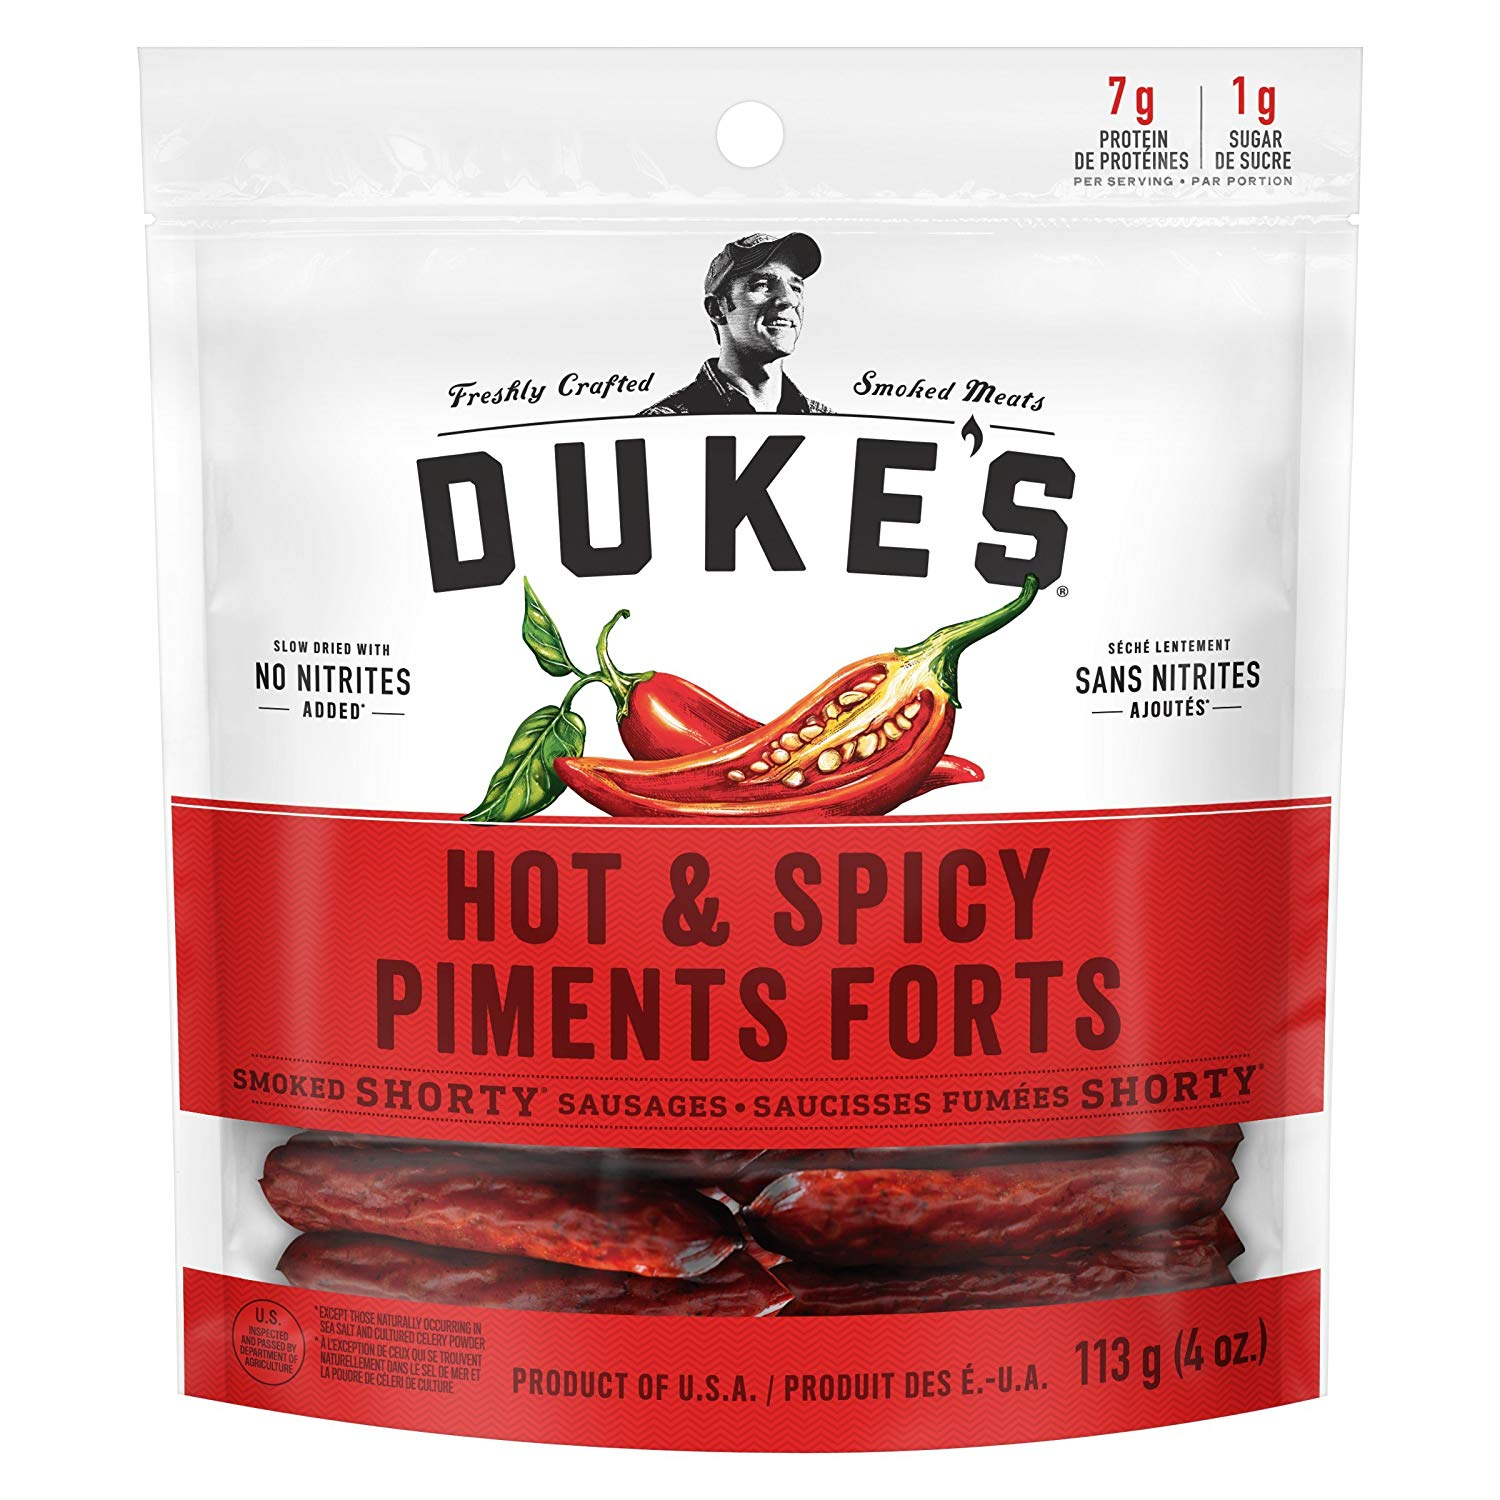 ONLY ON AMAZON: Duke's® Smoked Shorty Sausages - Hot and Spicy